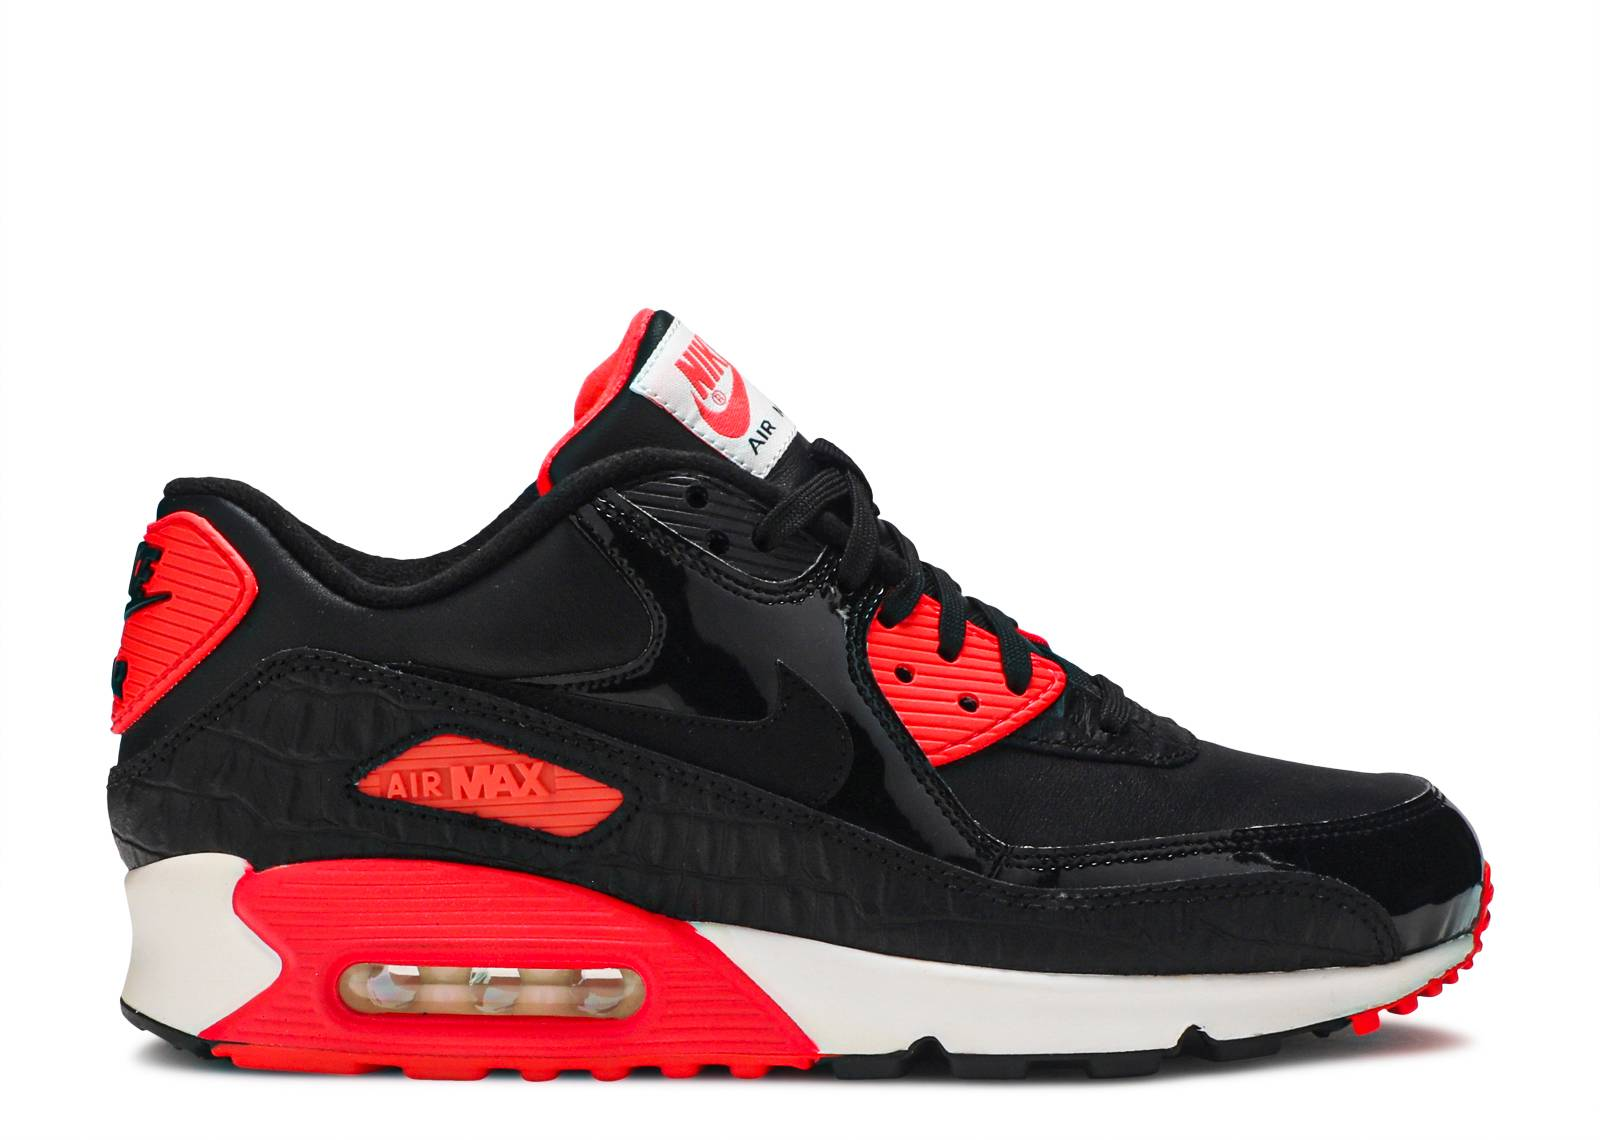 NEW NIKE AIR MAX 90 ANNIVERSARY = SIZE 9.5 = MEN'S SHOES SNEAKERS 725235-006